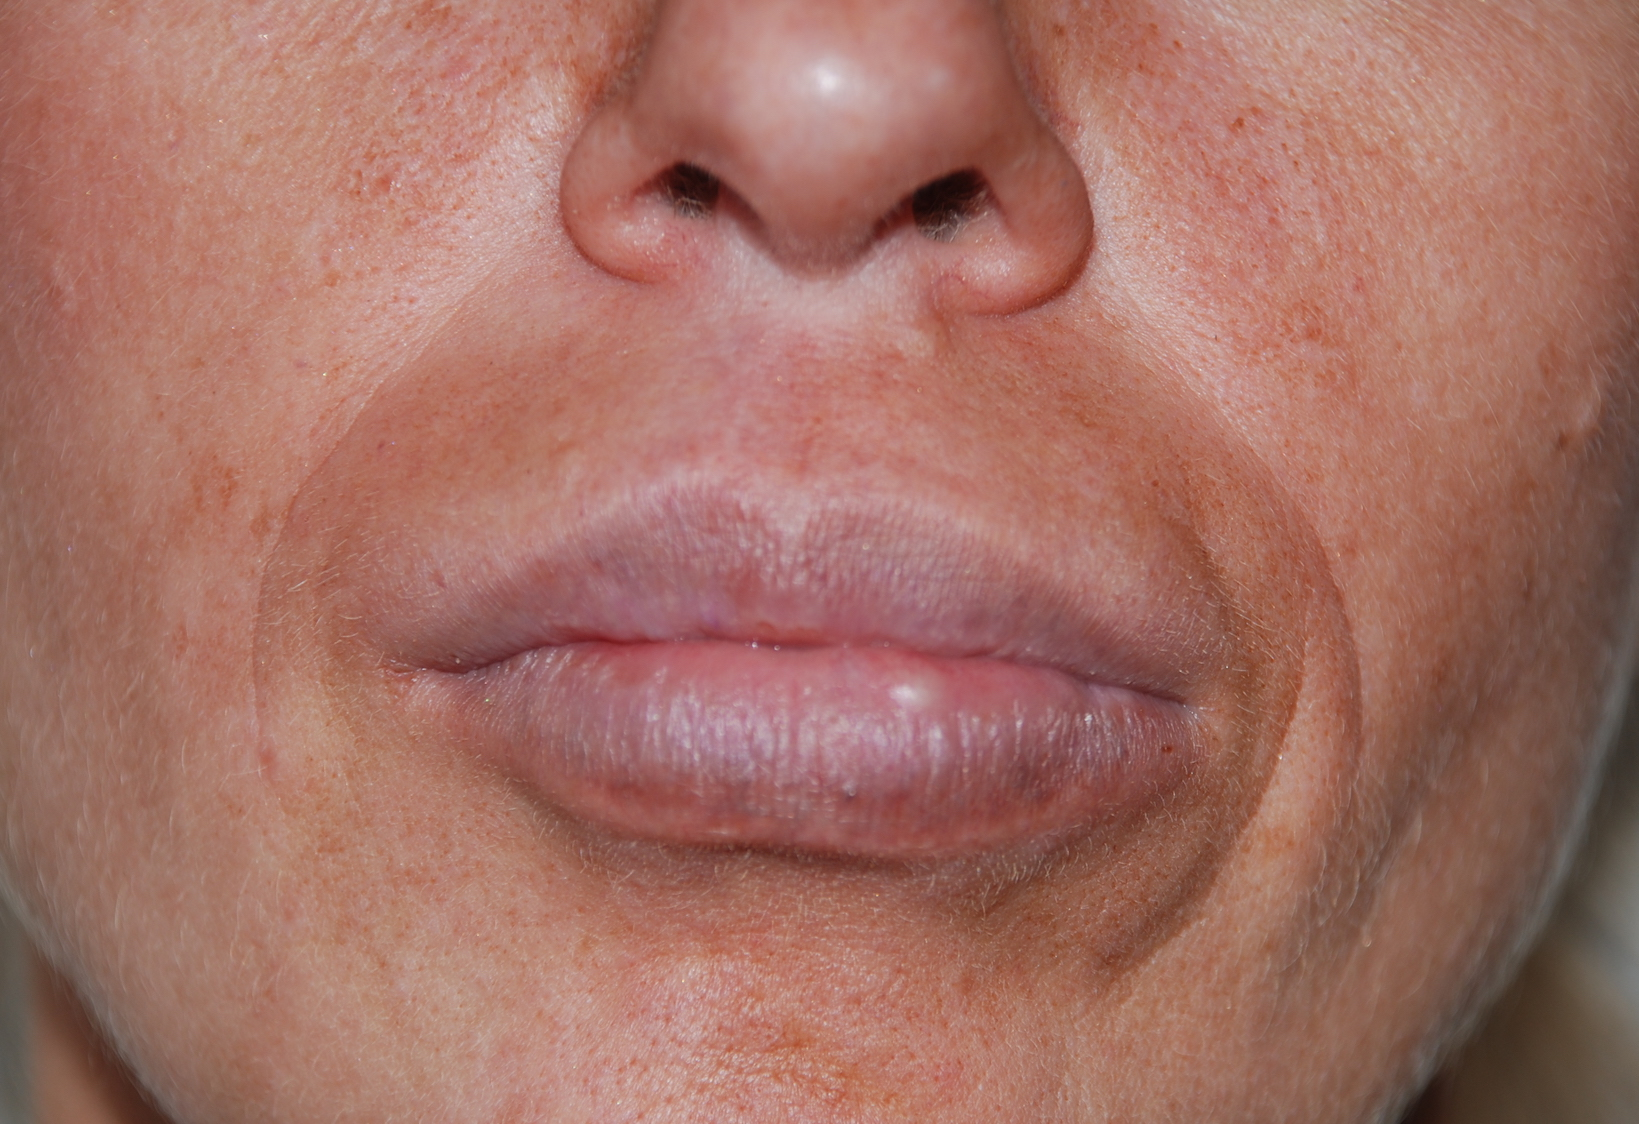 aquamid lip filler removal